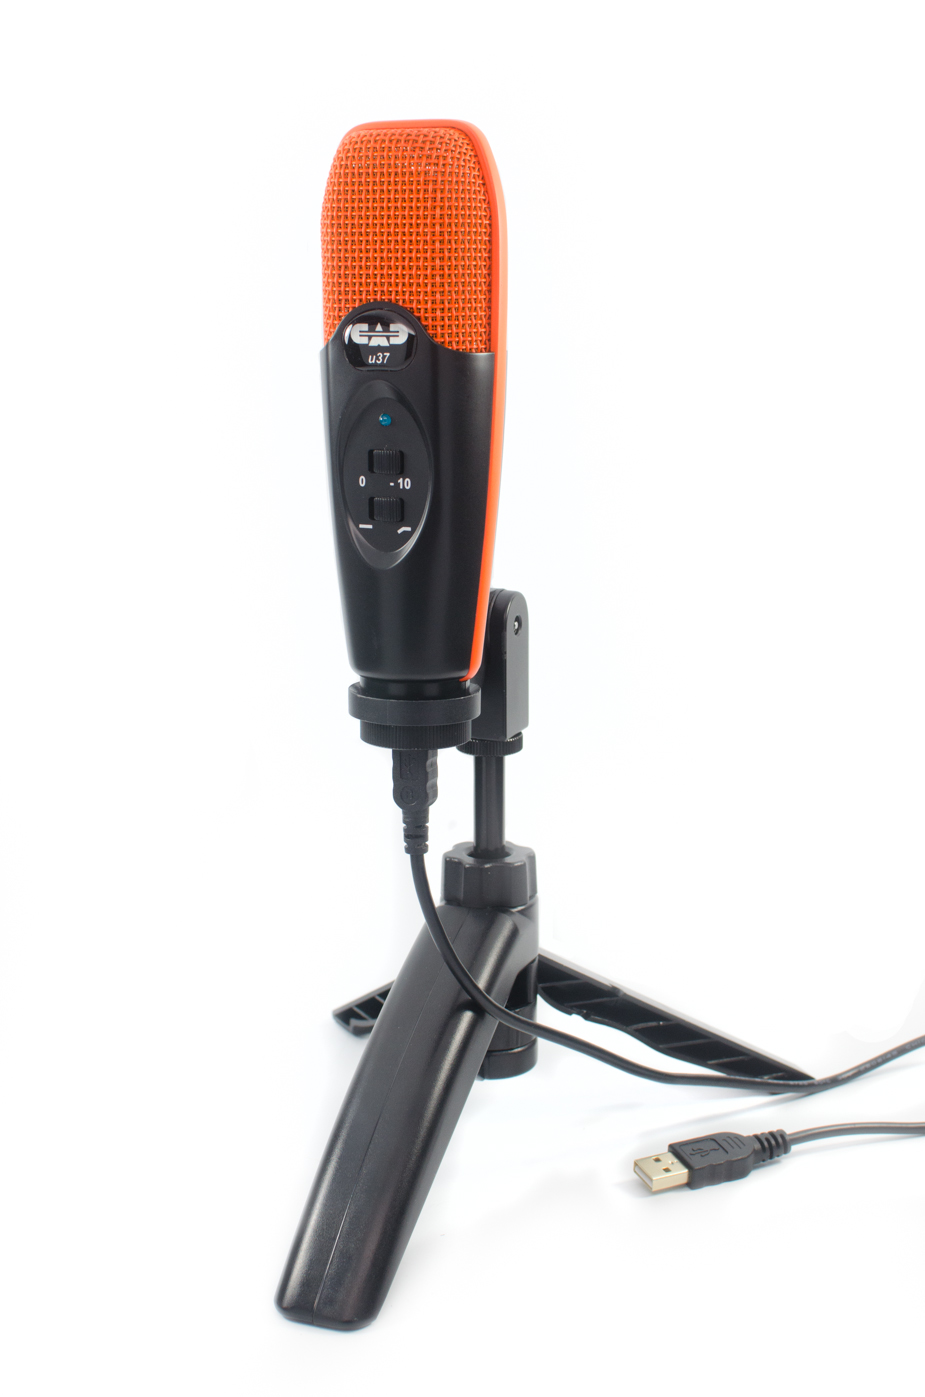 CAD Audio USB microphone Akron Photographer Joel Echleberger (1 of 4)